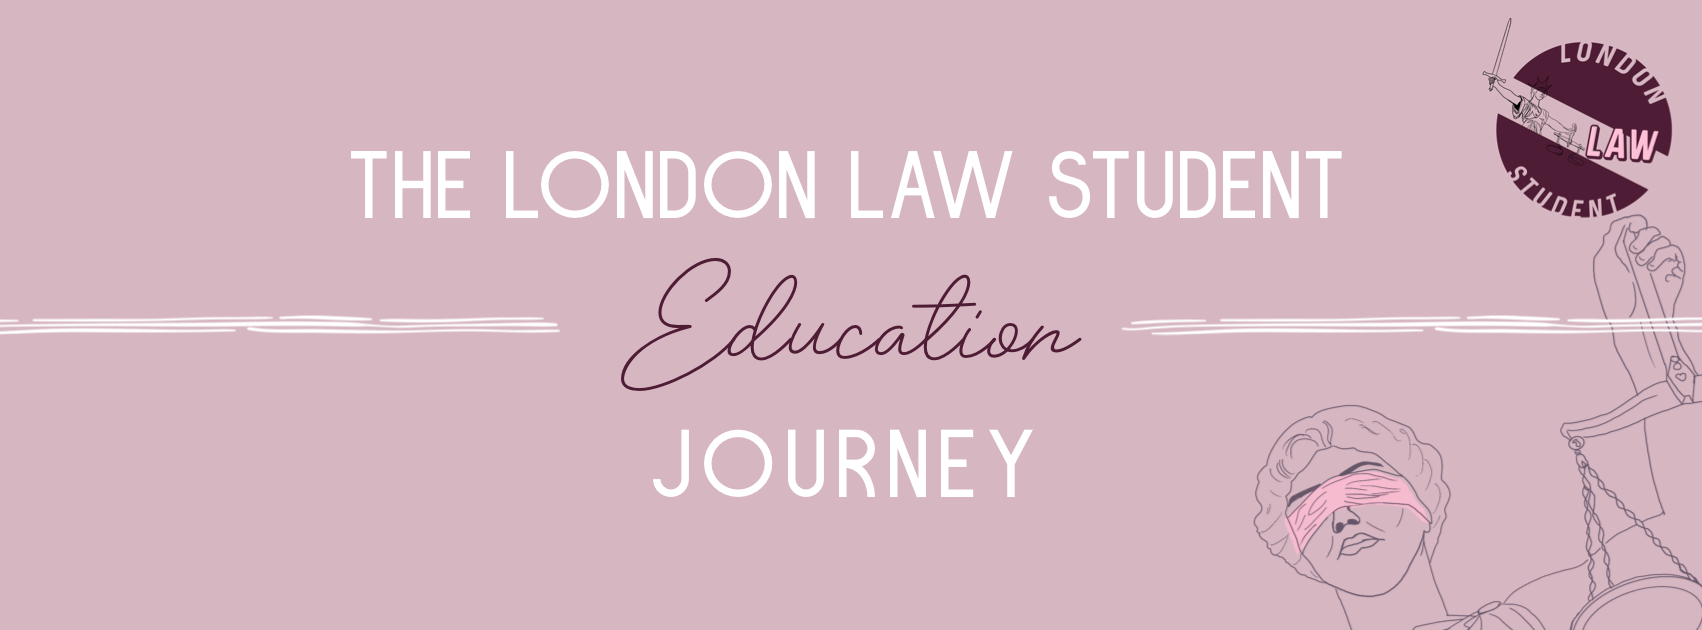 The London Law Student Journey: Education